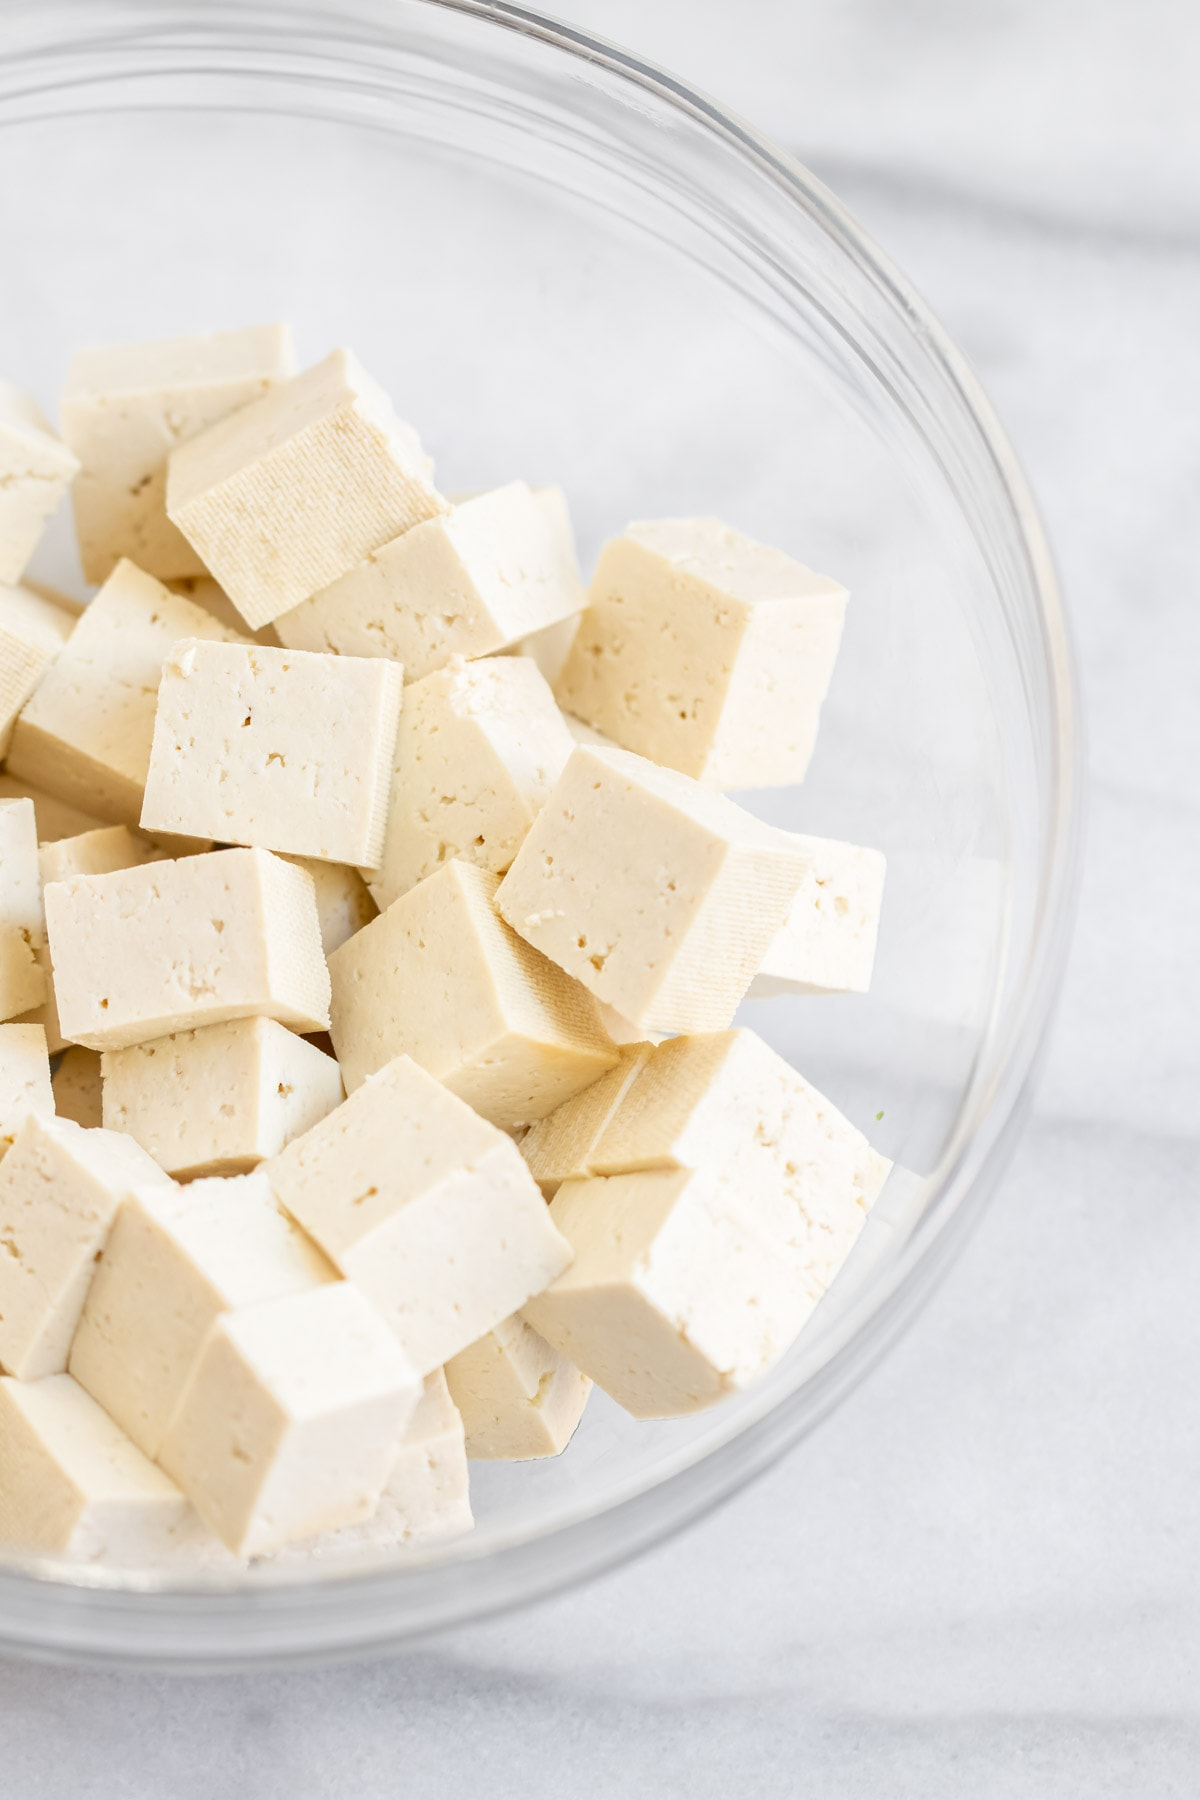 Cubed tofu in a glass bowl.